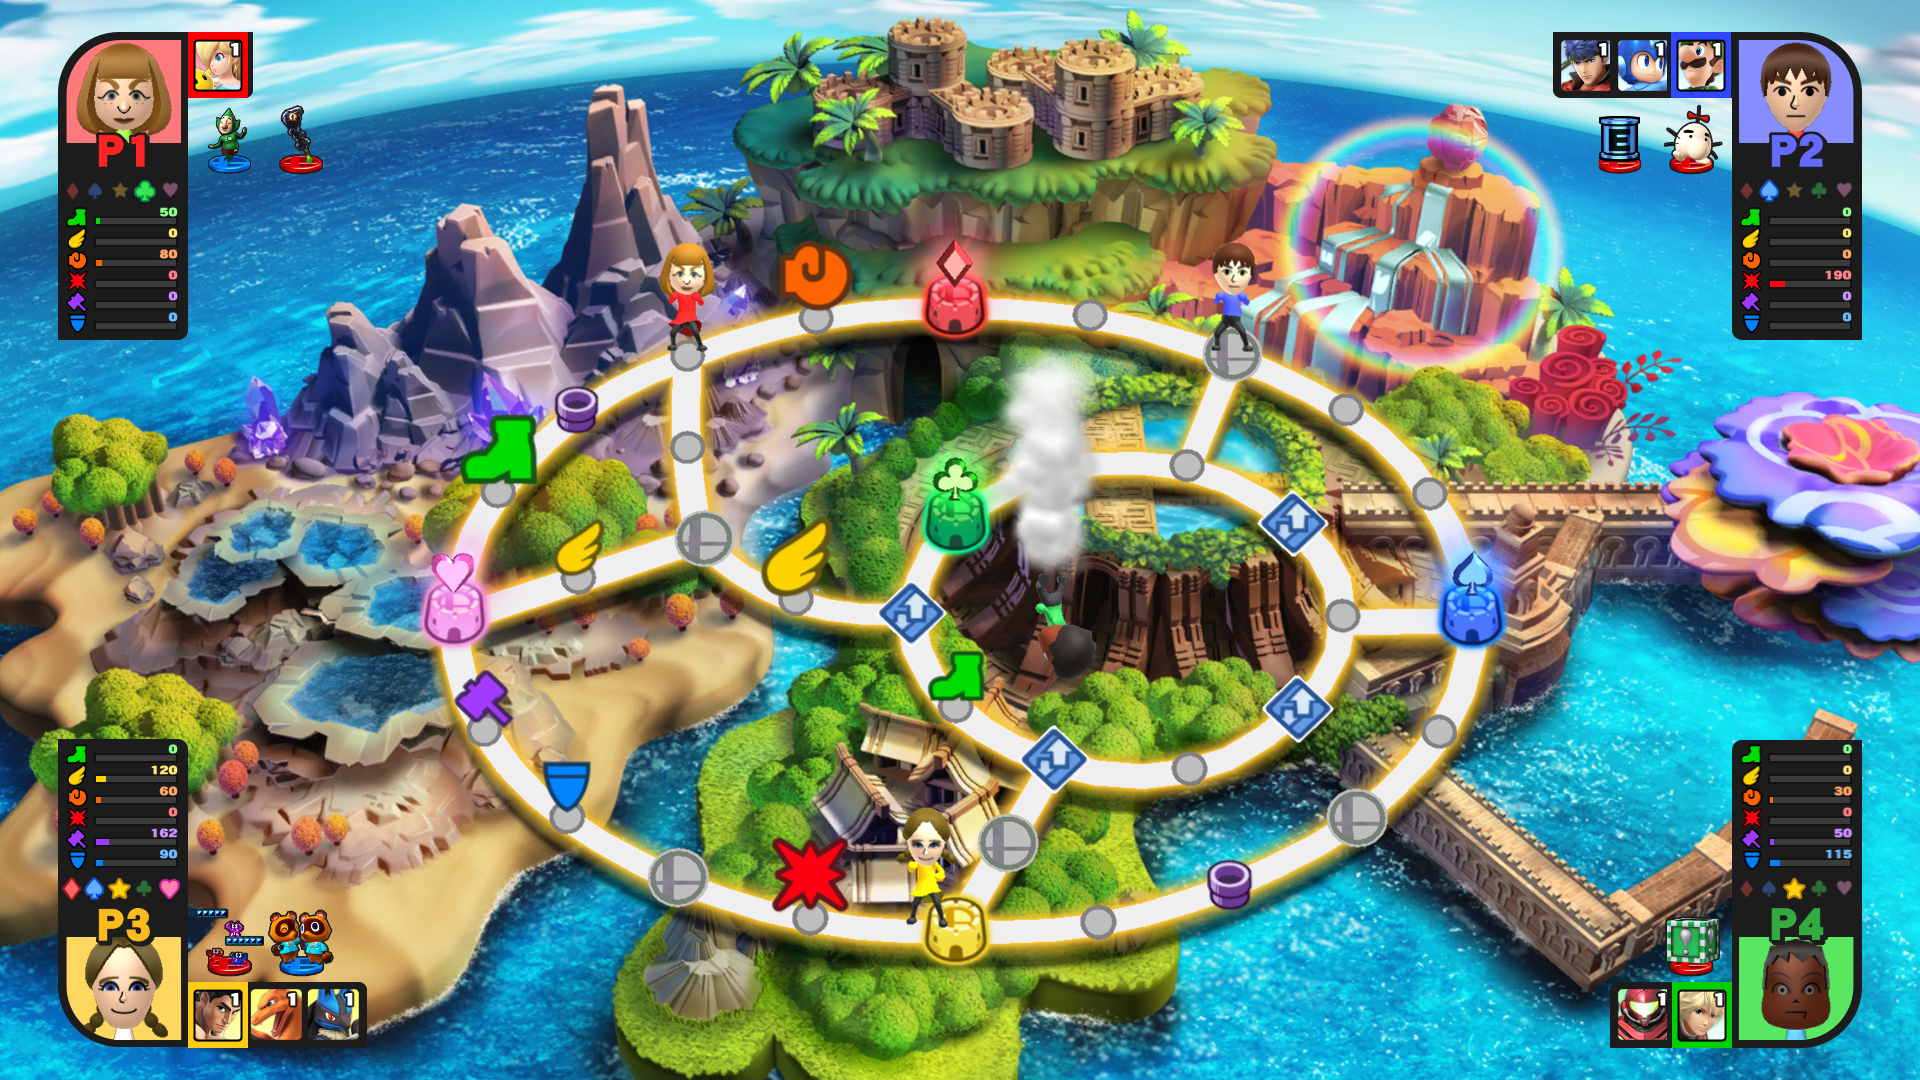 super smash bros for wii u unveils 54 new features including 8